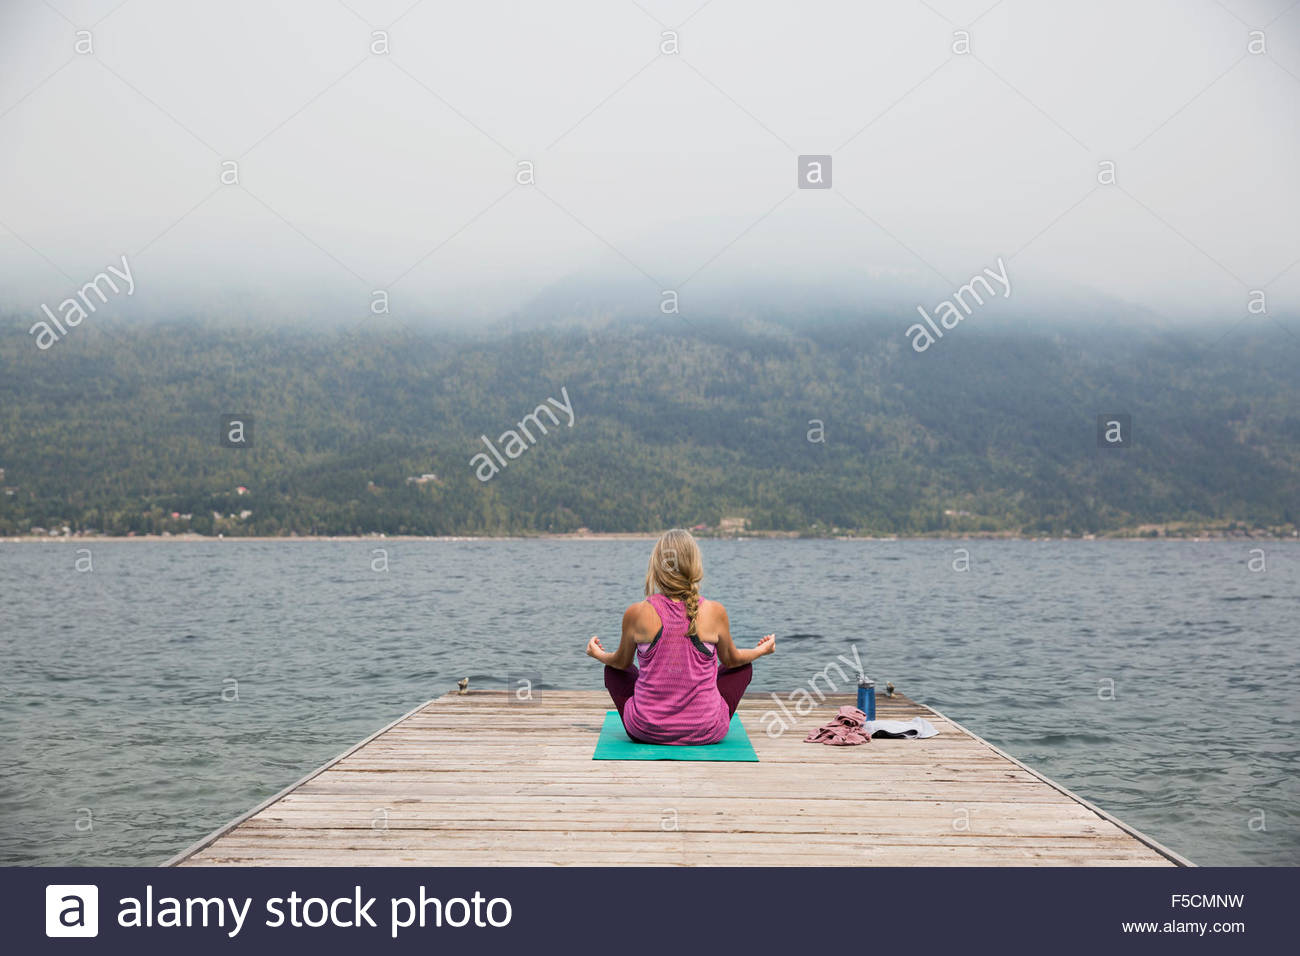 Mature woman lotus position yoga mat overlooking lake - Stock Image